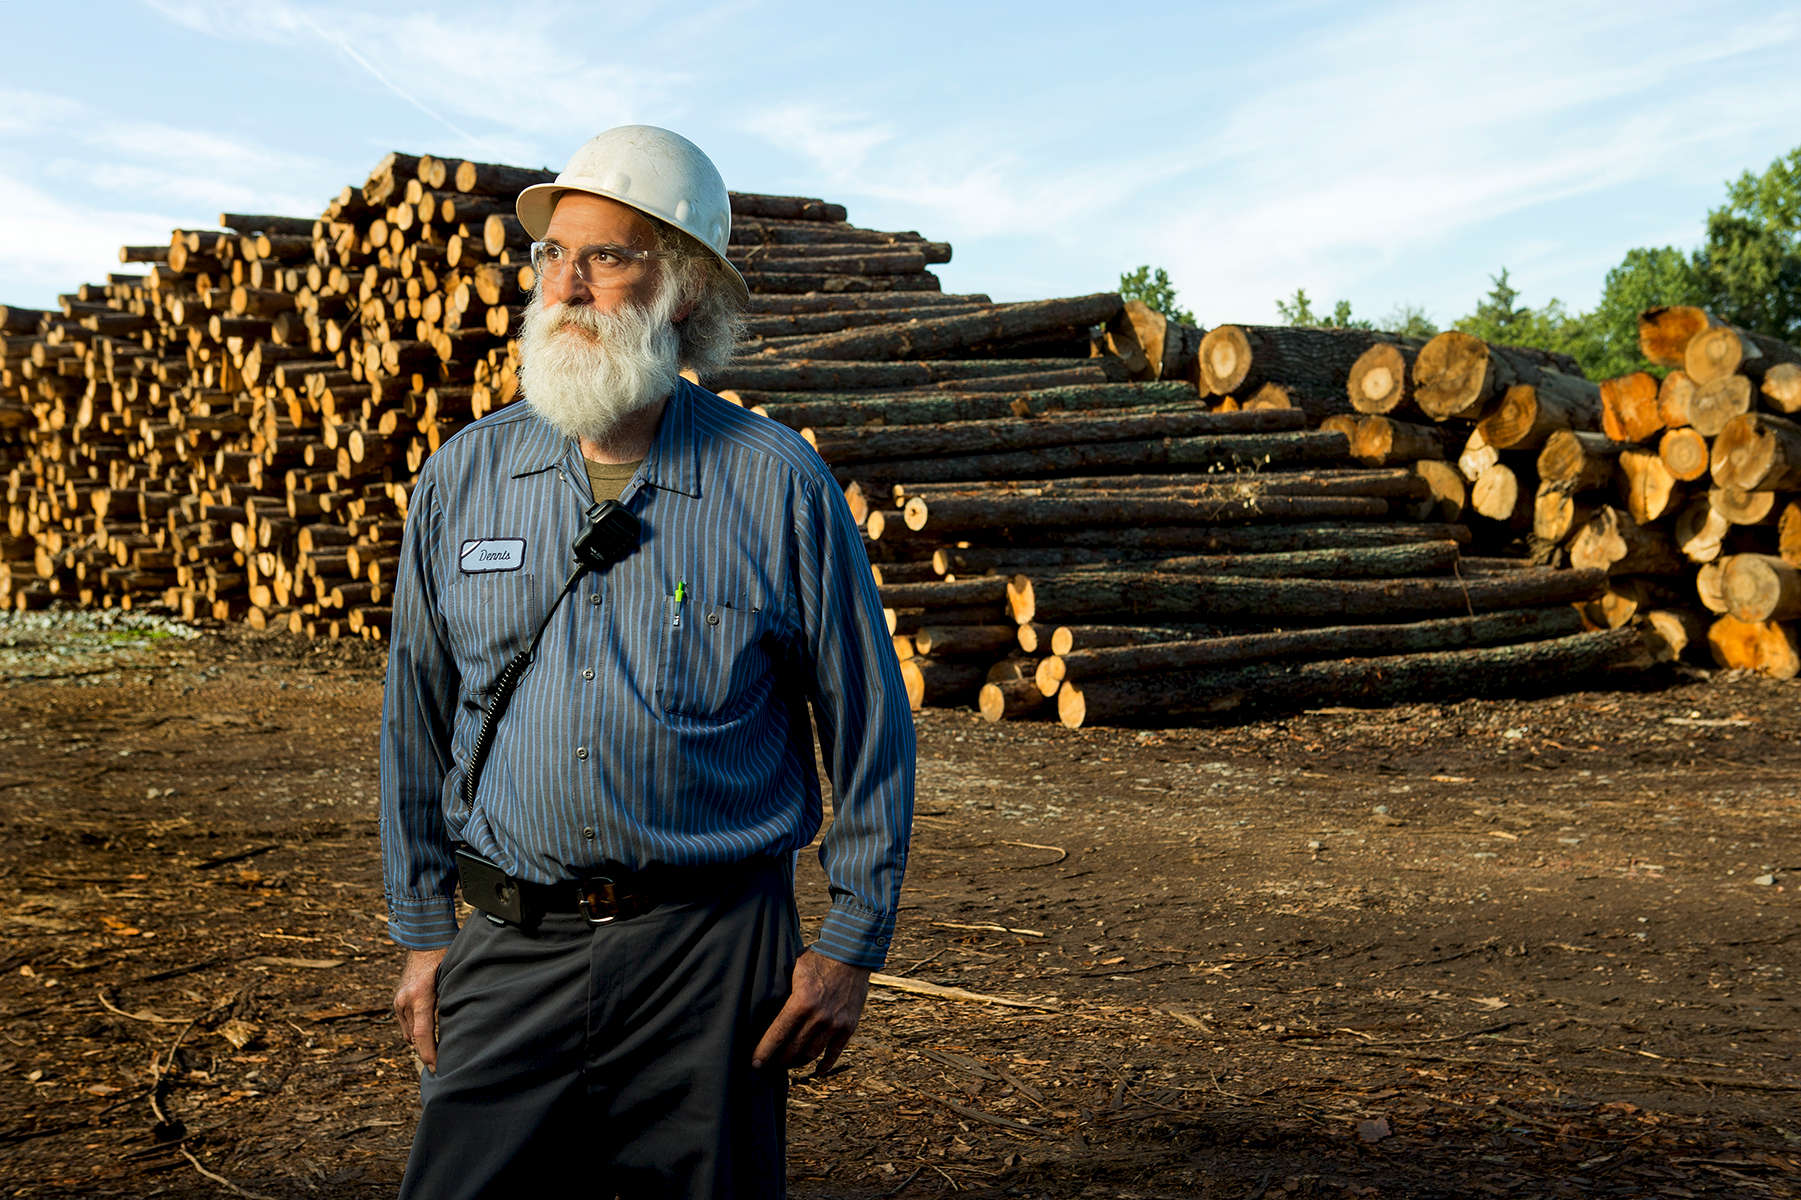 A long-time employee of a pallet manufacturing plant pauses to have his photo taken in front stacked logs . The man has a thick white beard and is wearing safety glasses and a hard hat (PPE/Personal protective equipment). At their highest, the logs are stacked about 30 logs high.